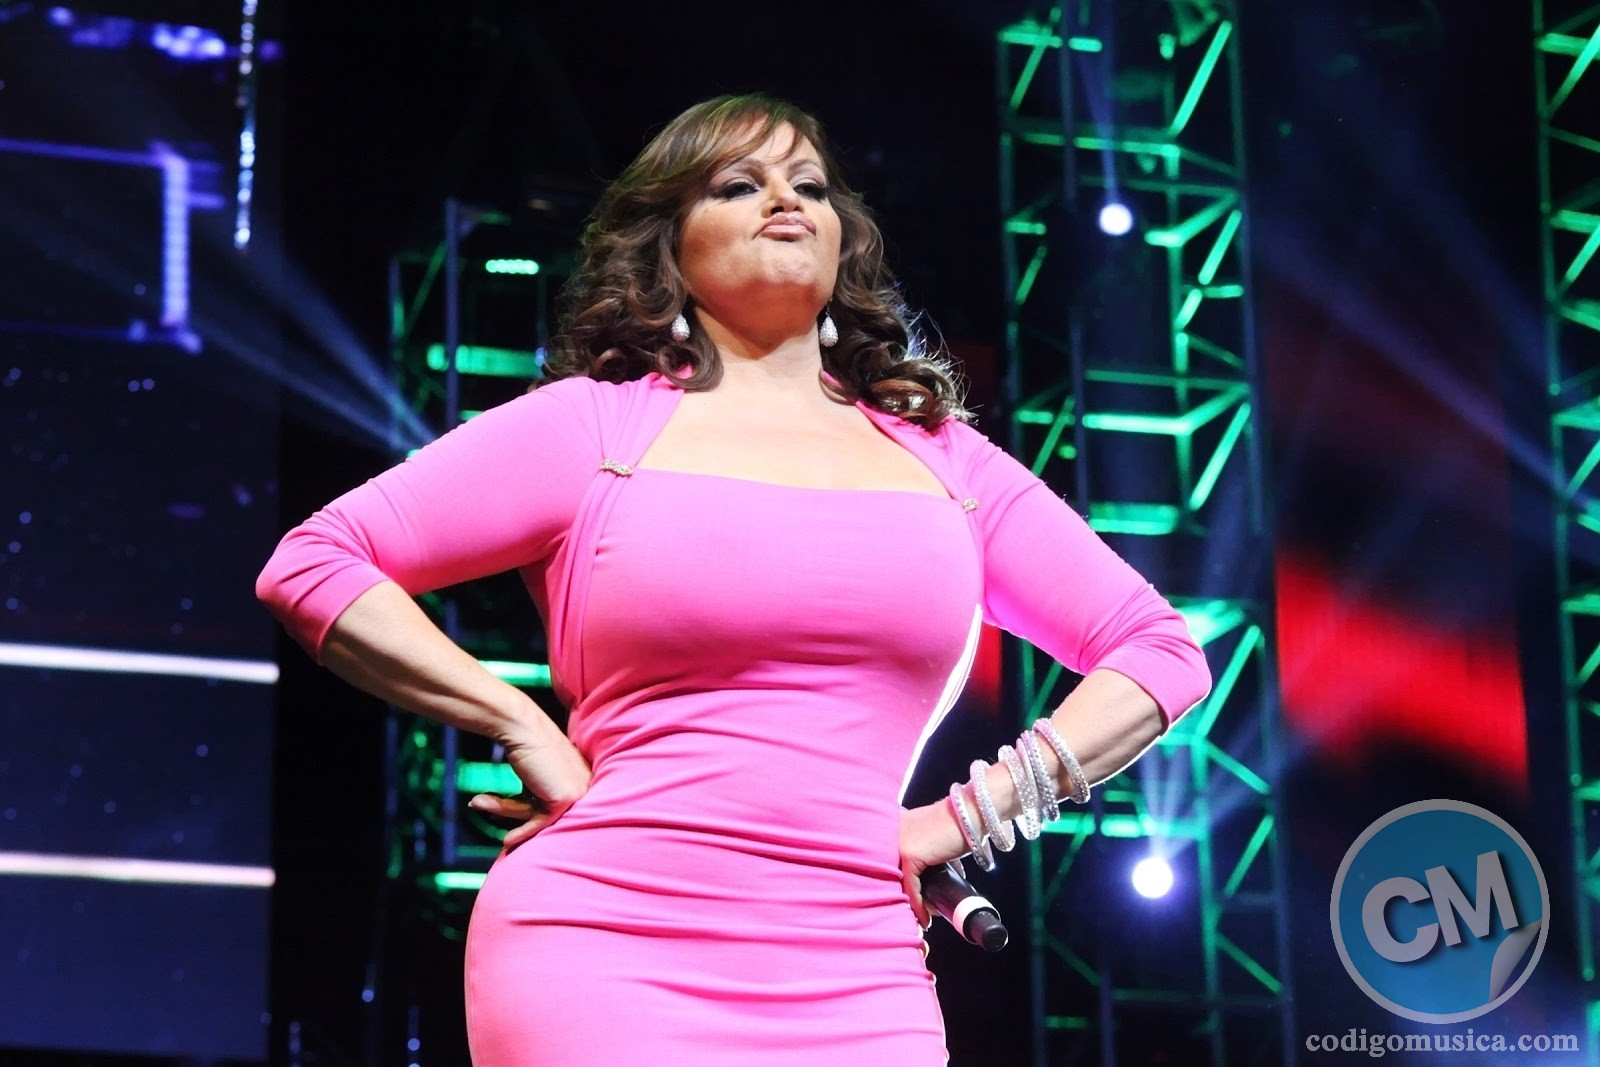 fotos de jenni rivera 26